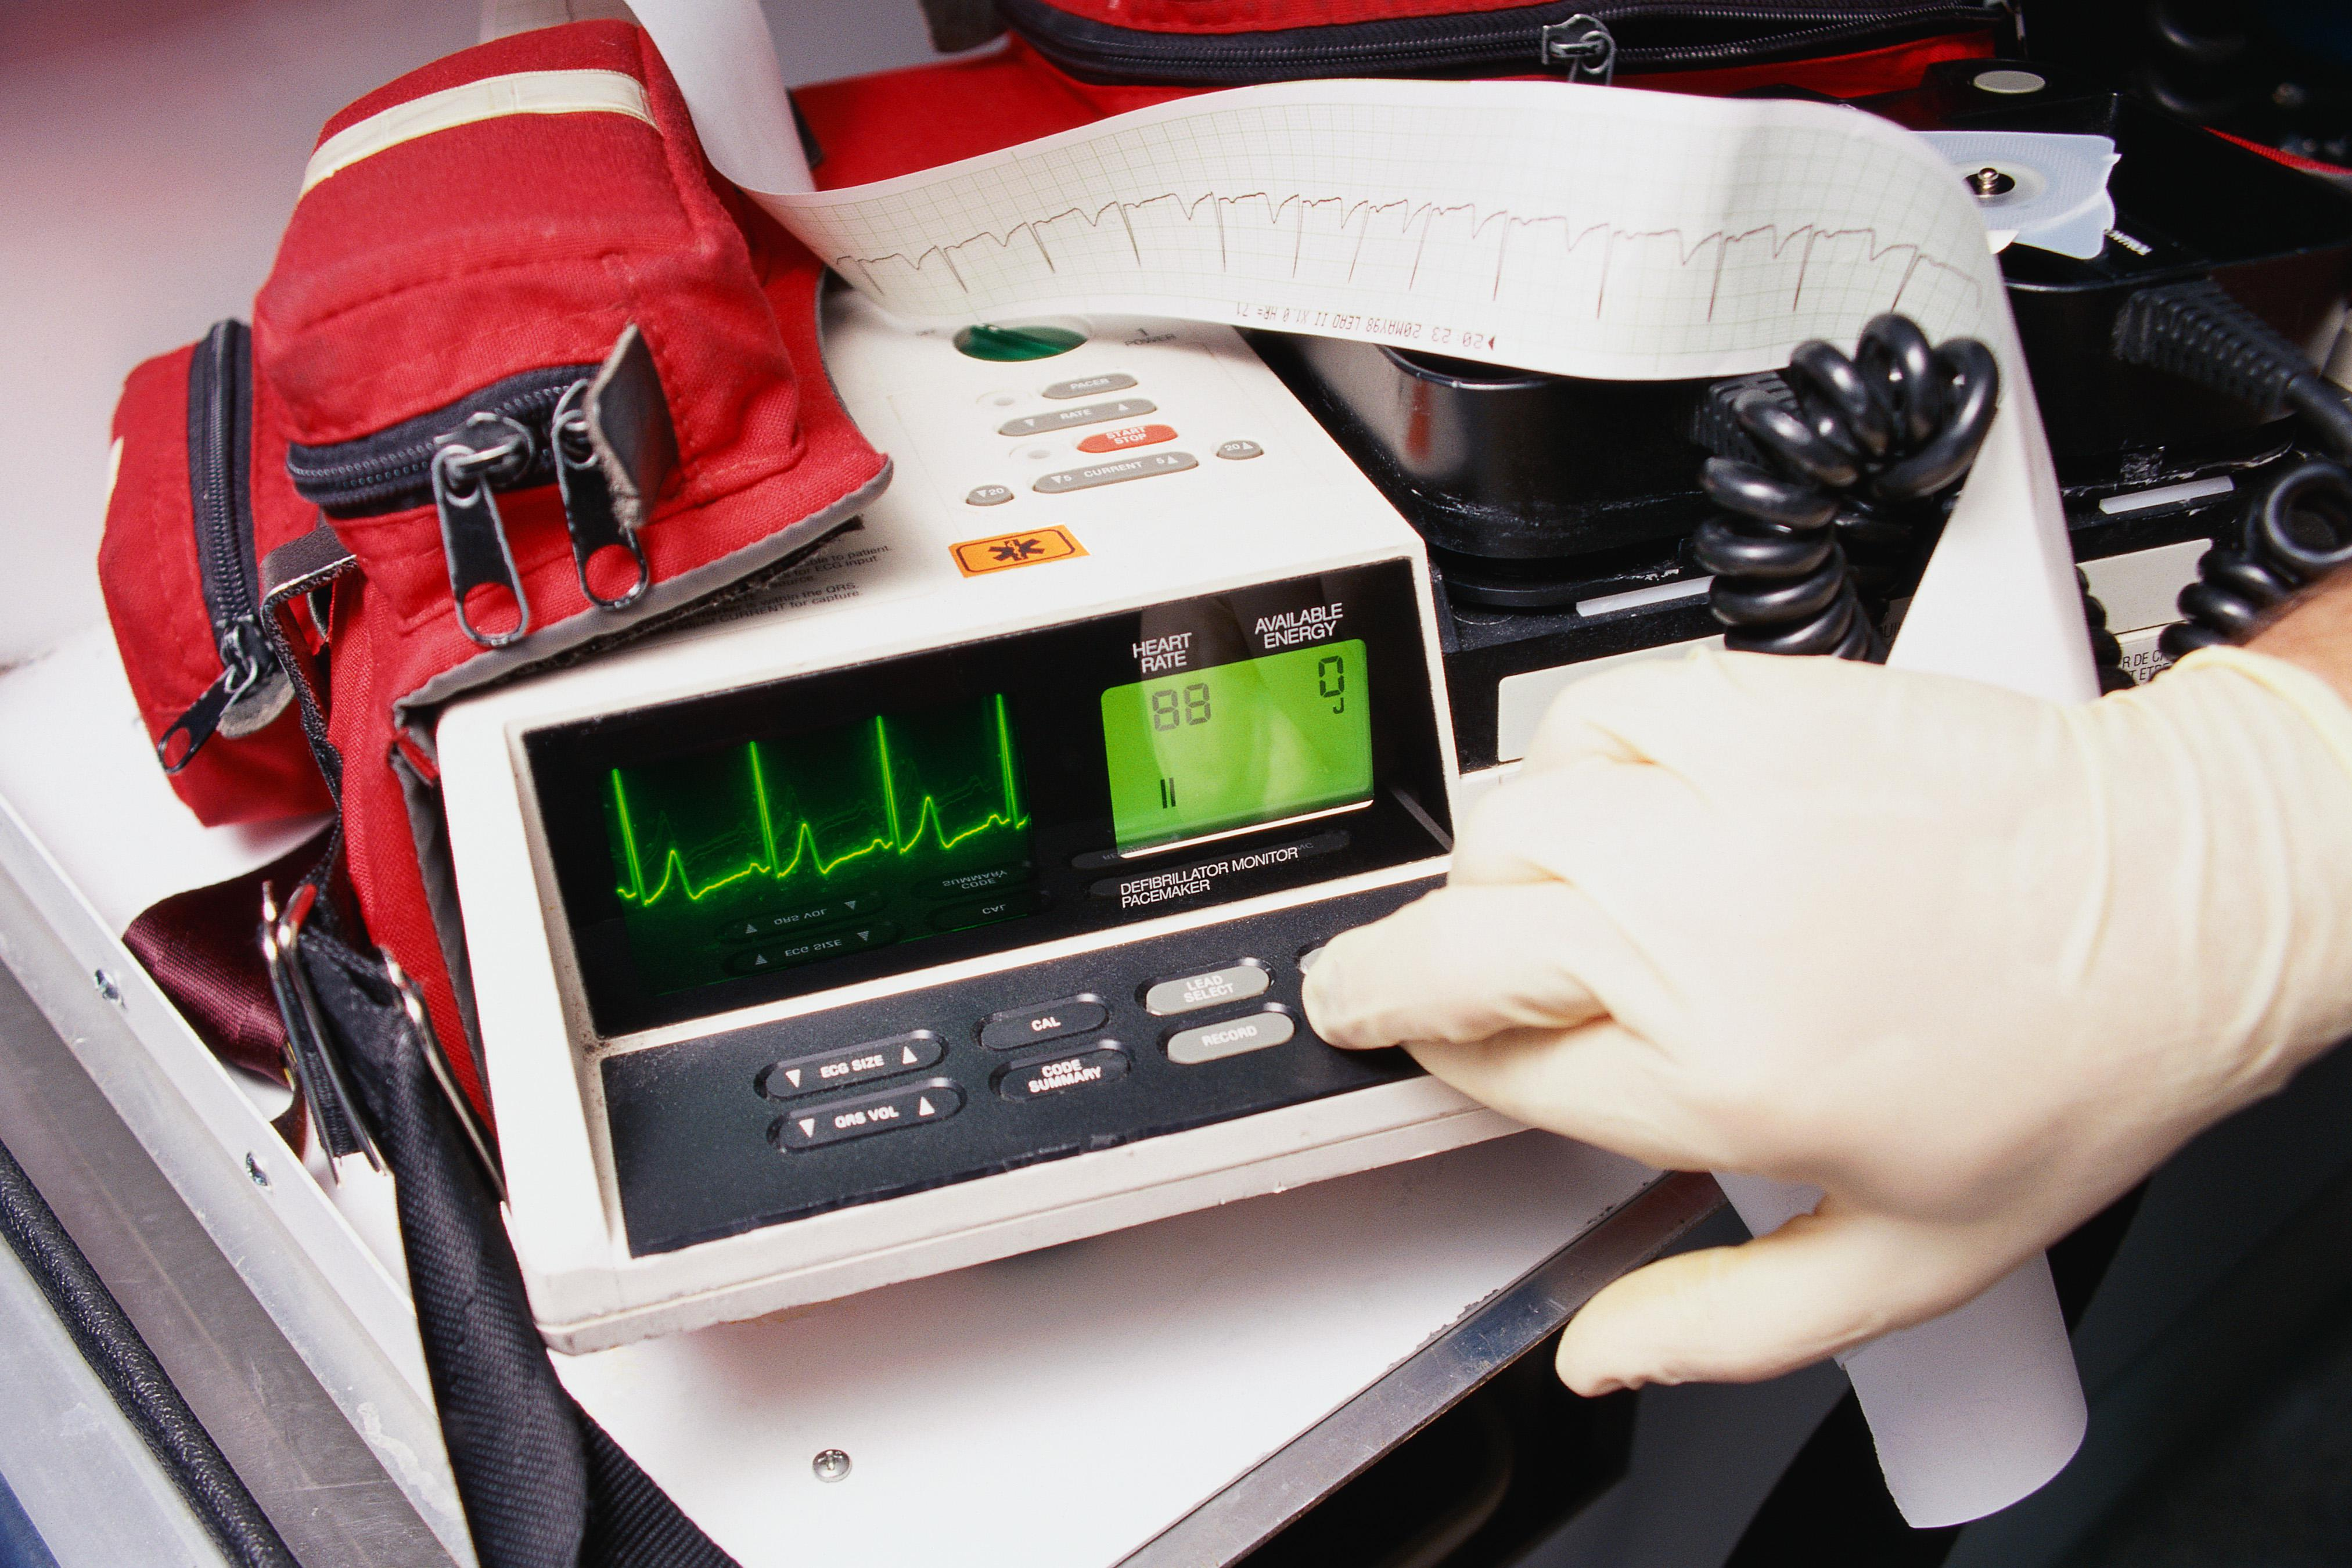 Hand in rubber glove pressing button on defibrillation monitor